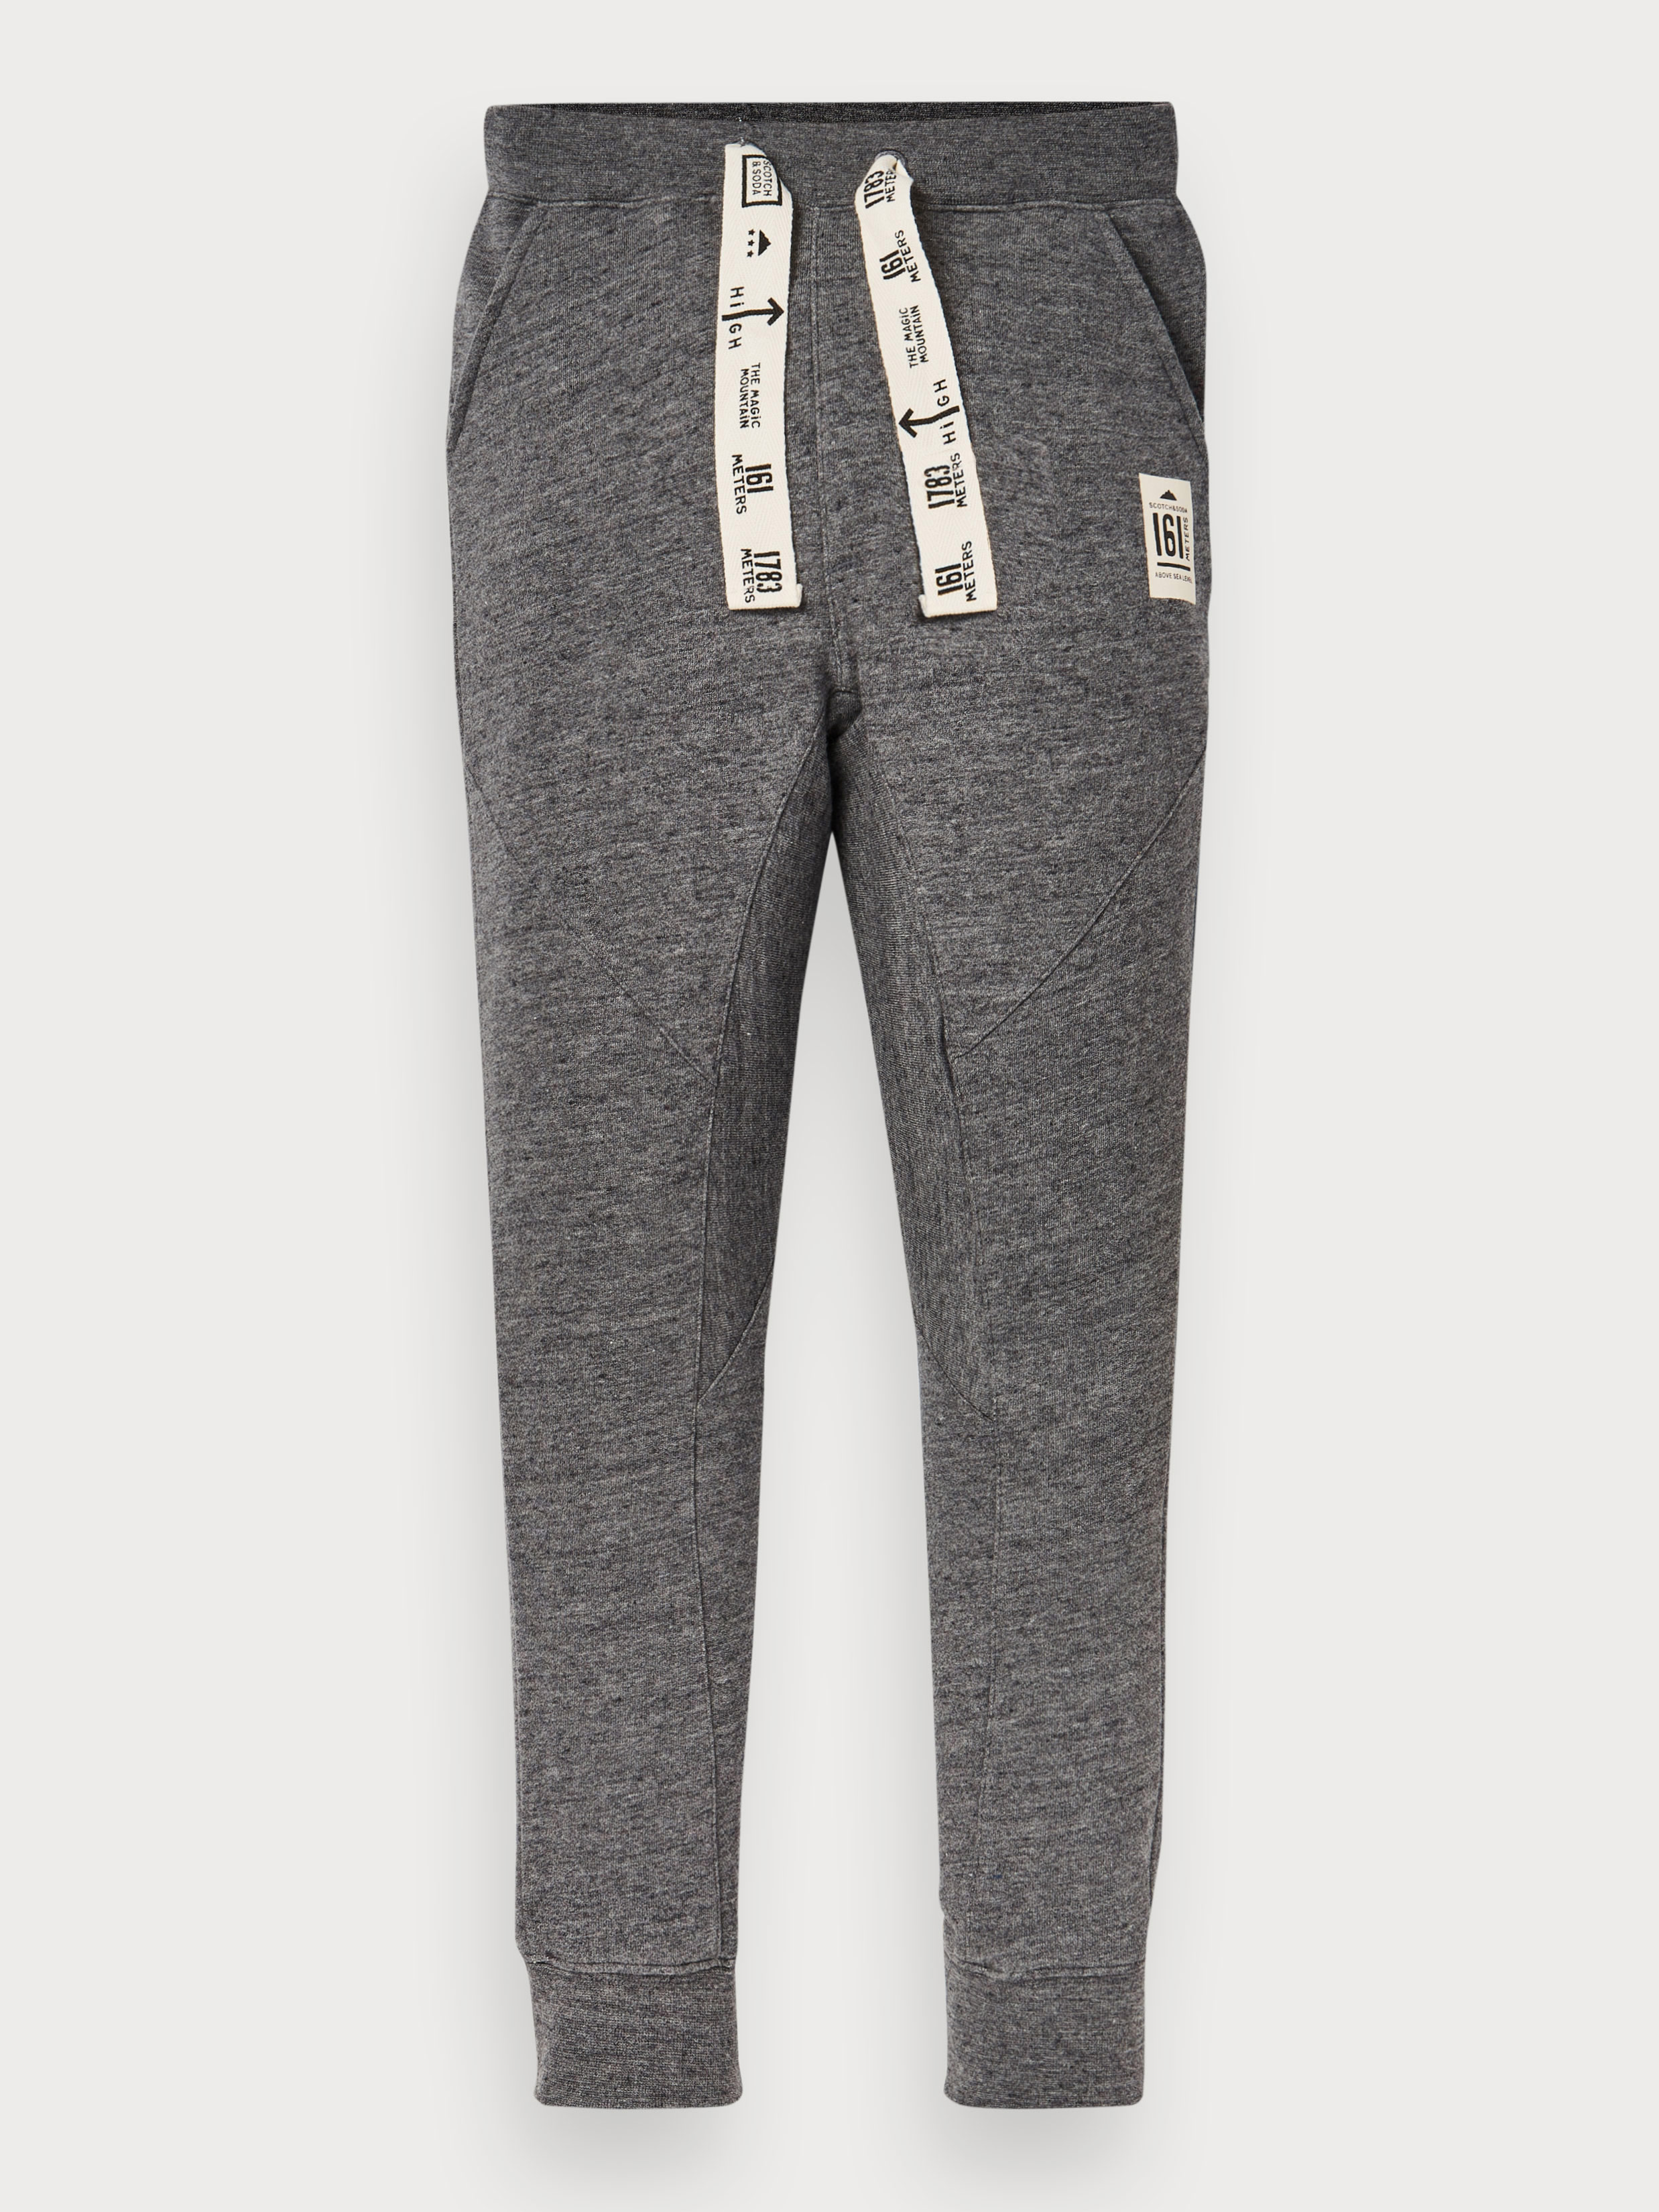 boyscSweat pants